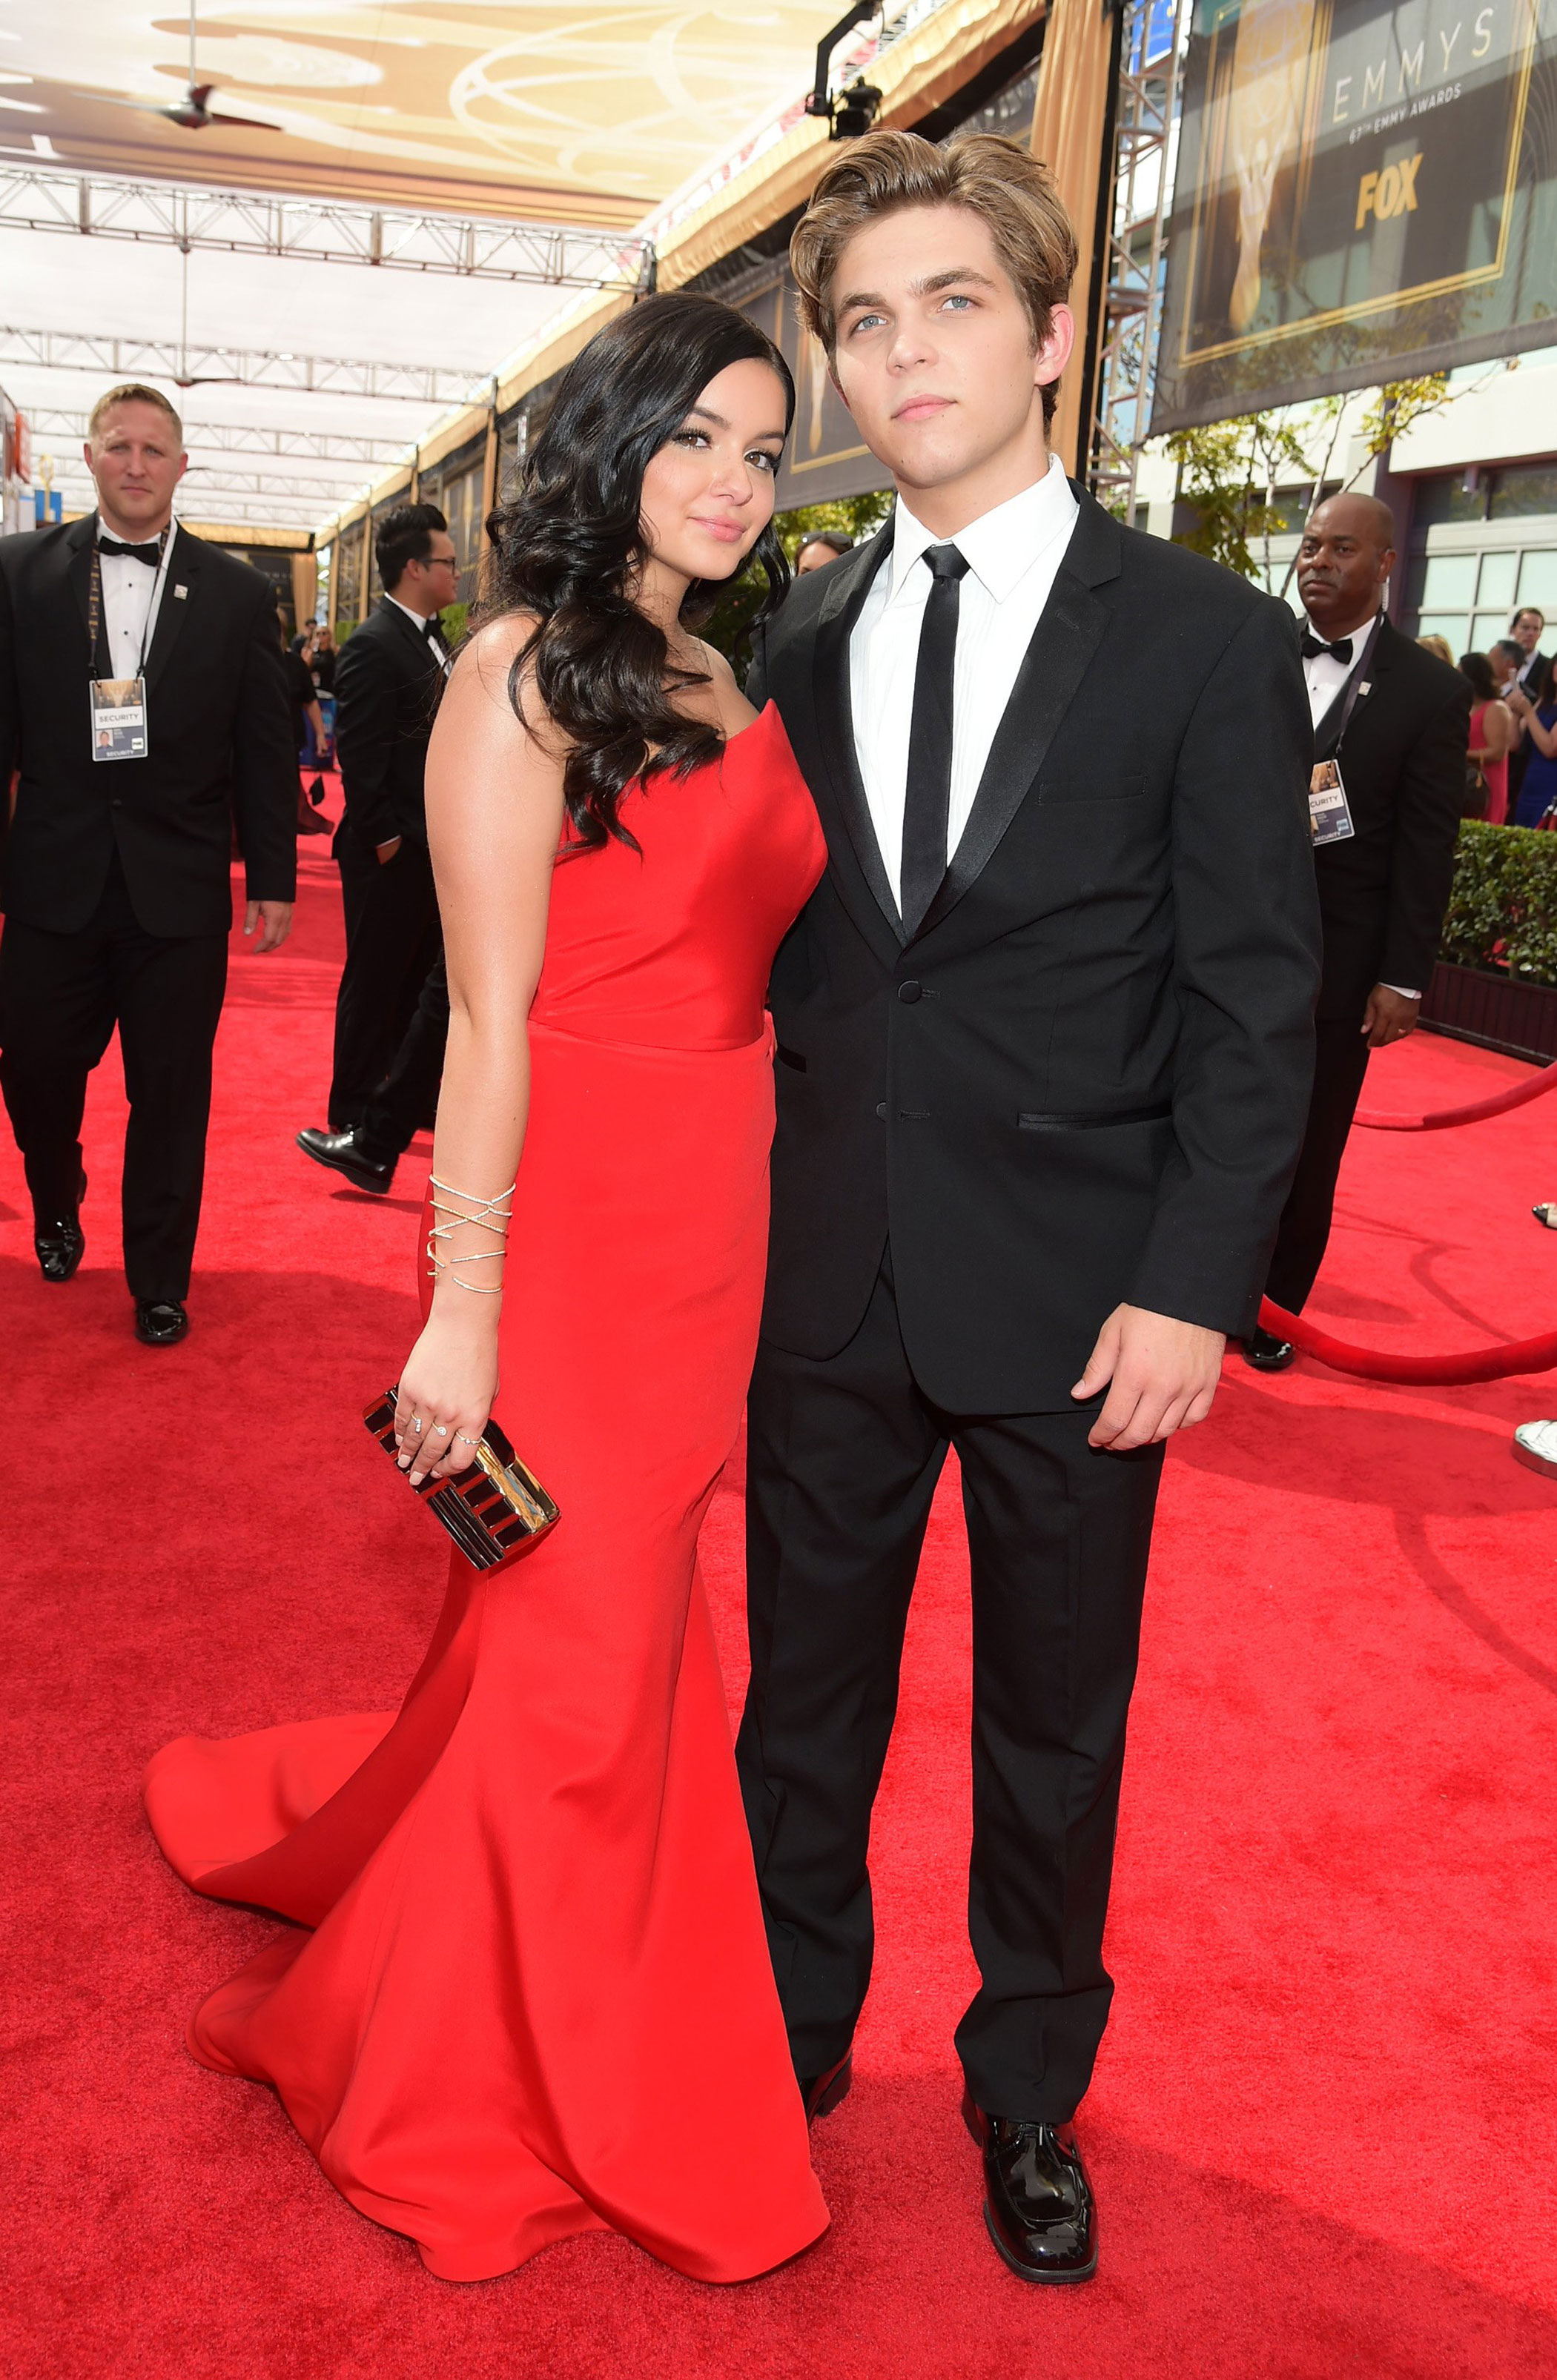 Ariel Winter and Laurent Claude Gaudette at the 67th Emmy Award on Sept. 20, 2015 in Los Angeles.